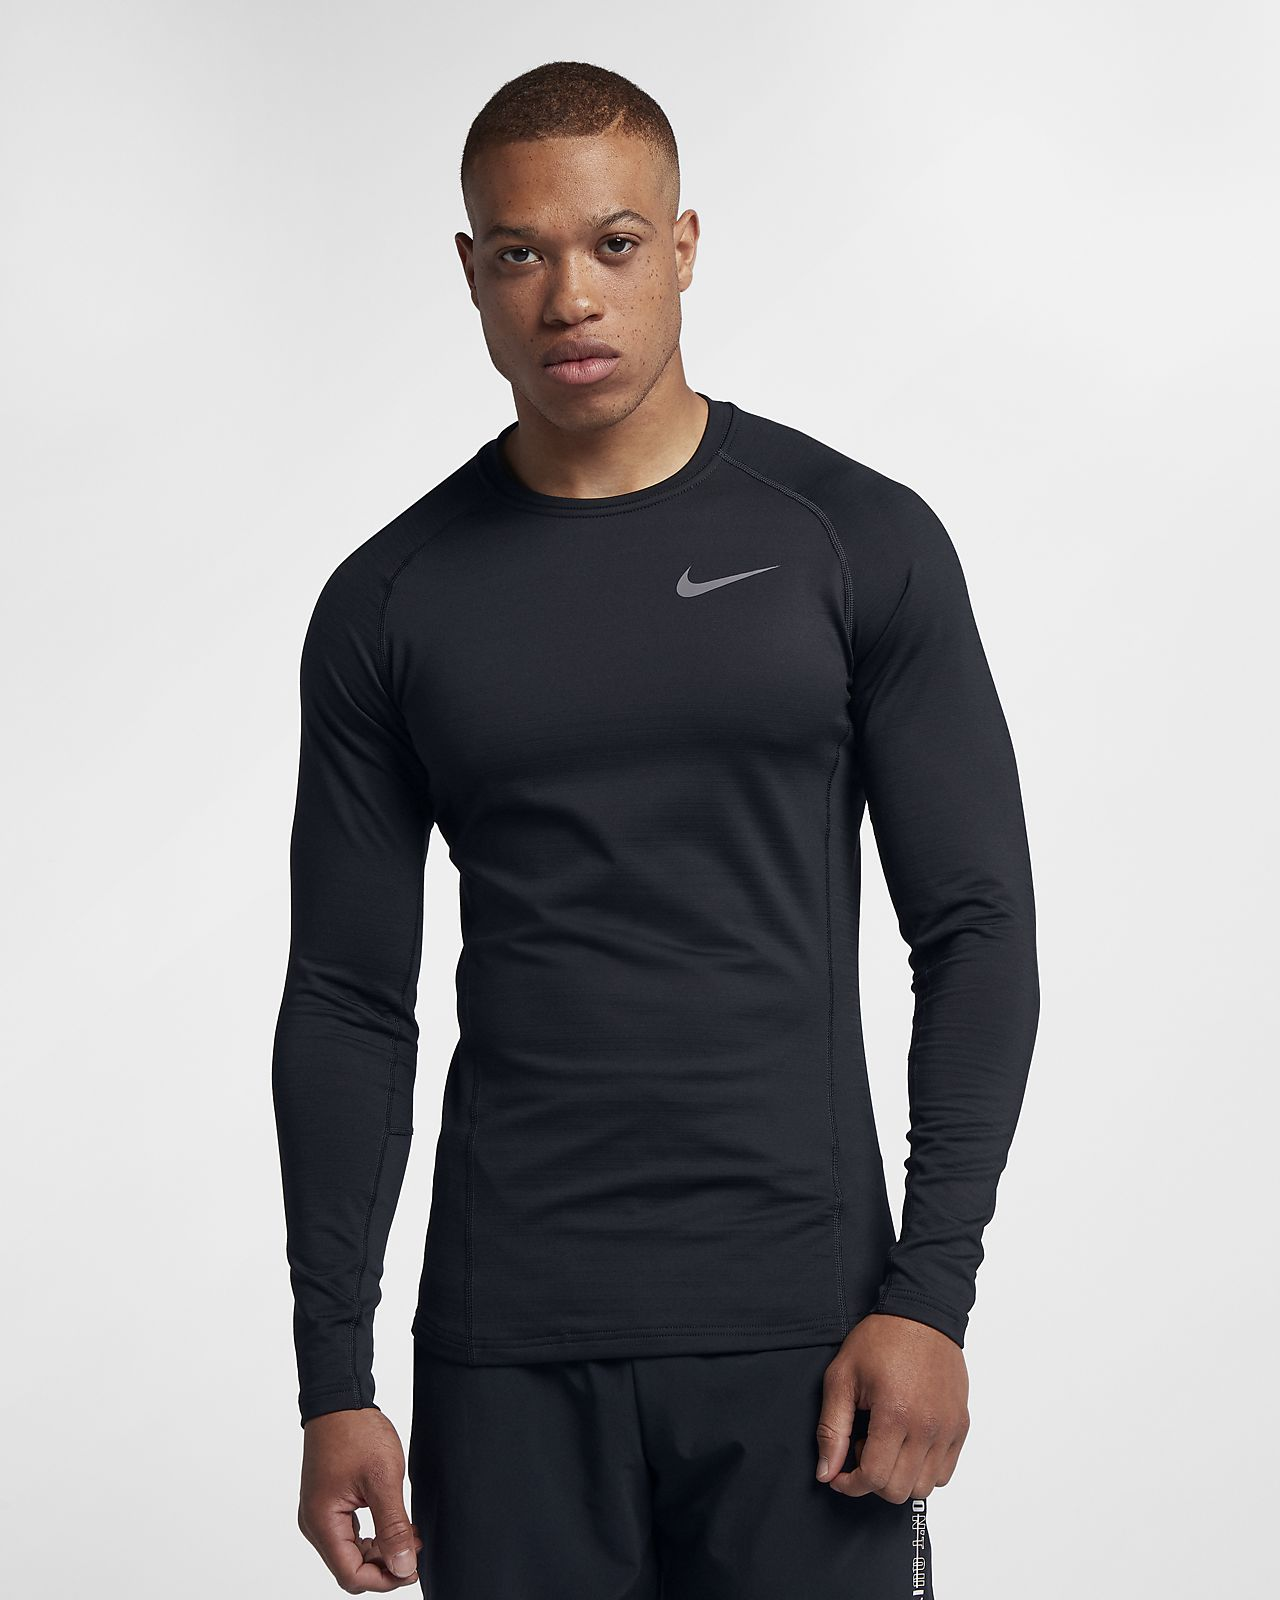 Nike Herren Kompressionsshirt Pro Short Sleeve Tight in weiß